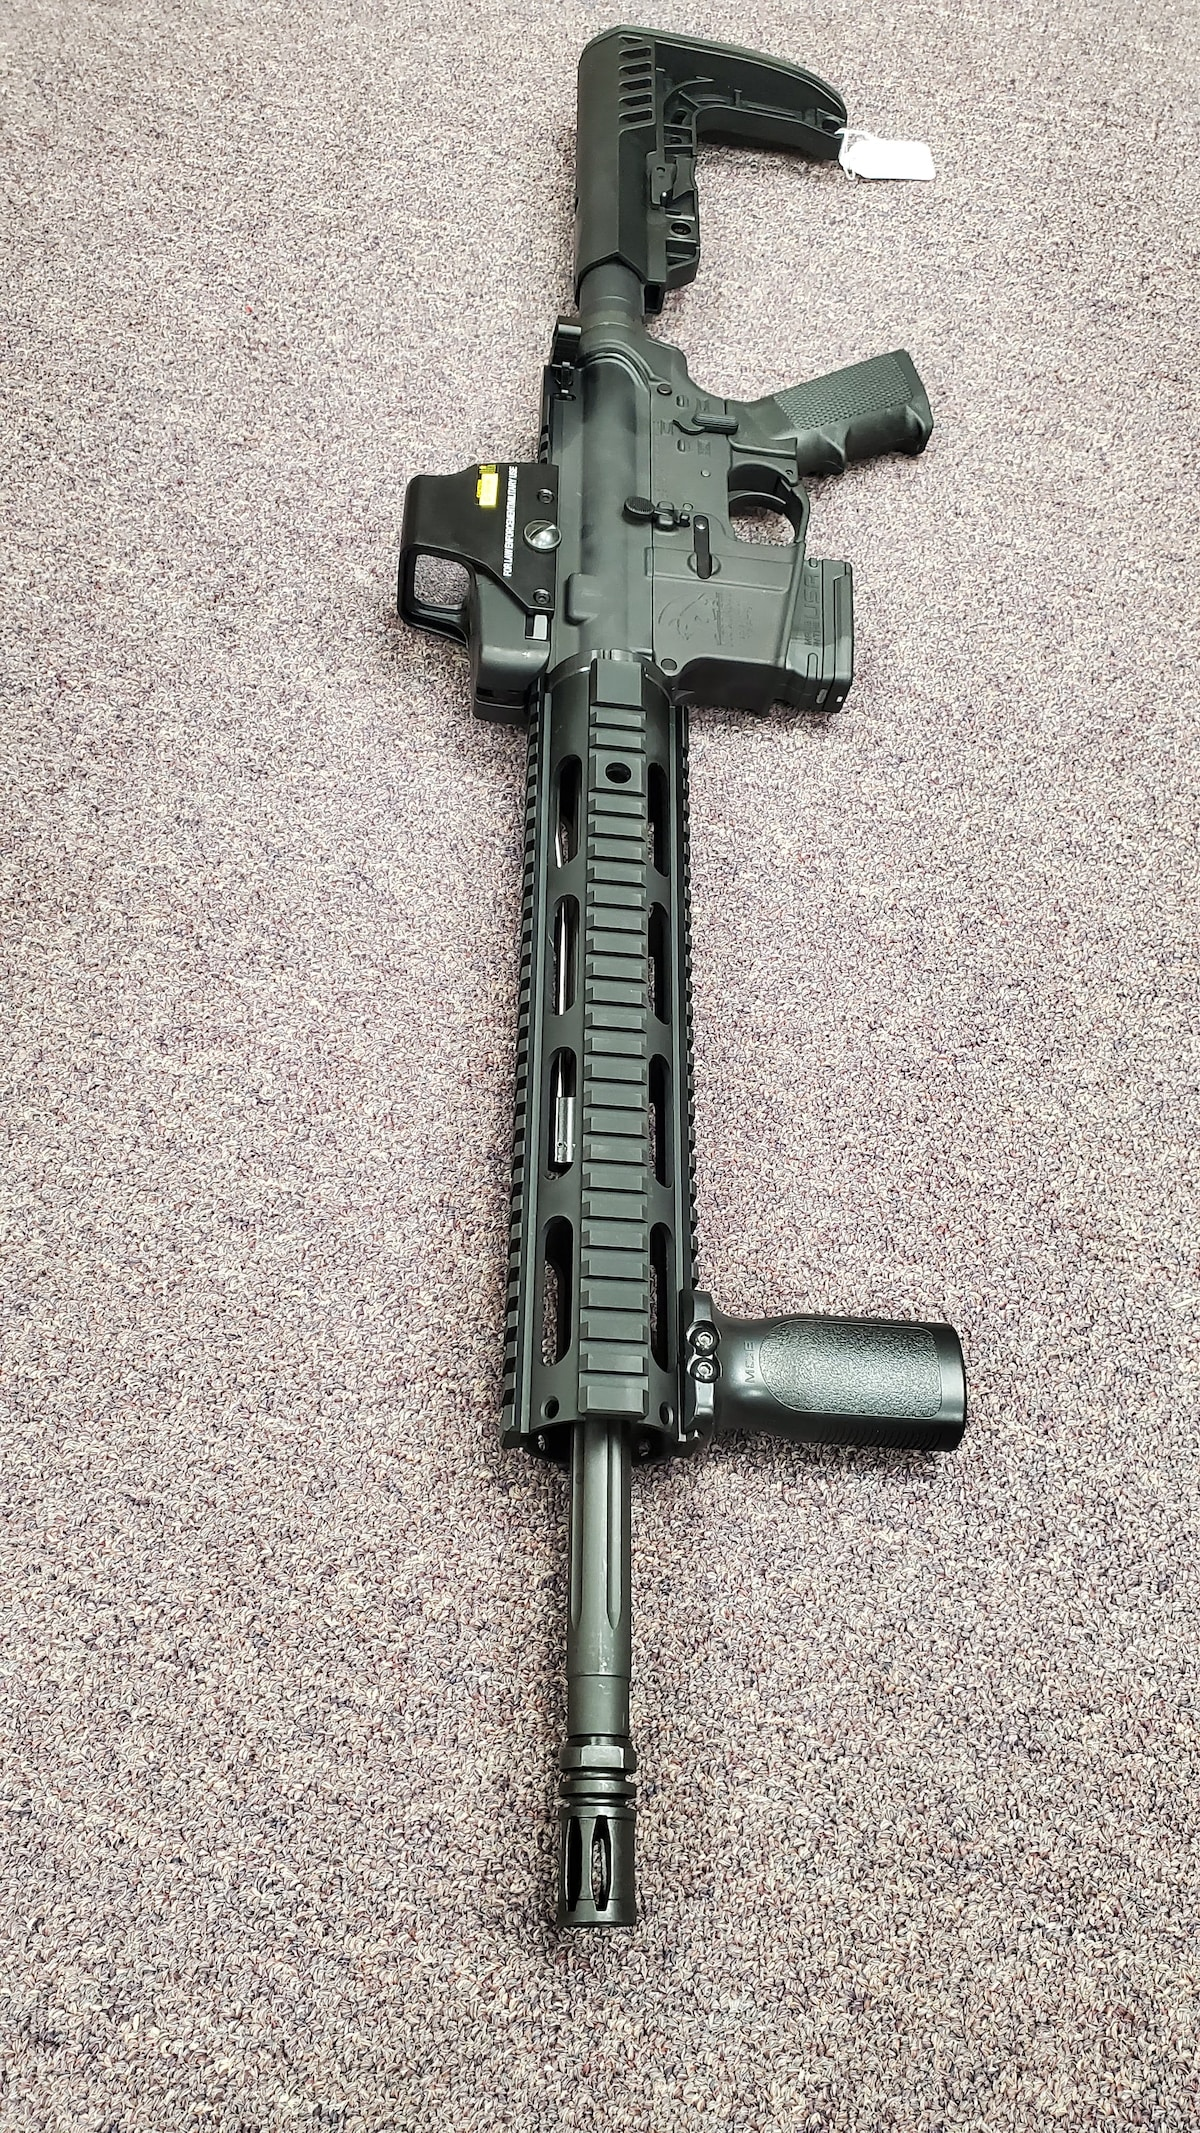 MORIARTI ARMAMENTS AR-15 with 10rd magazine AR15 & red dot sight package